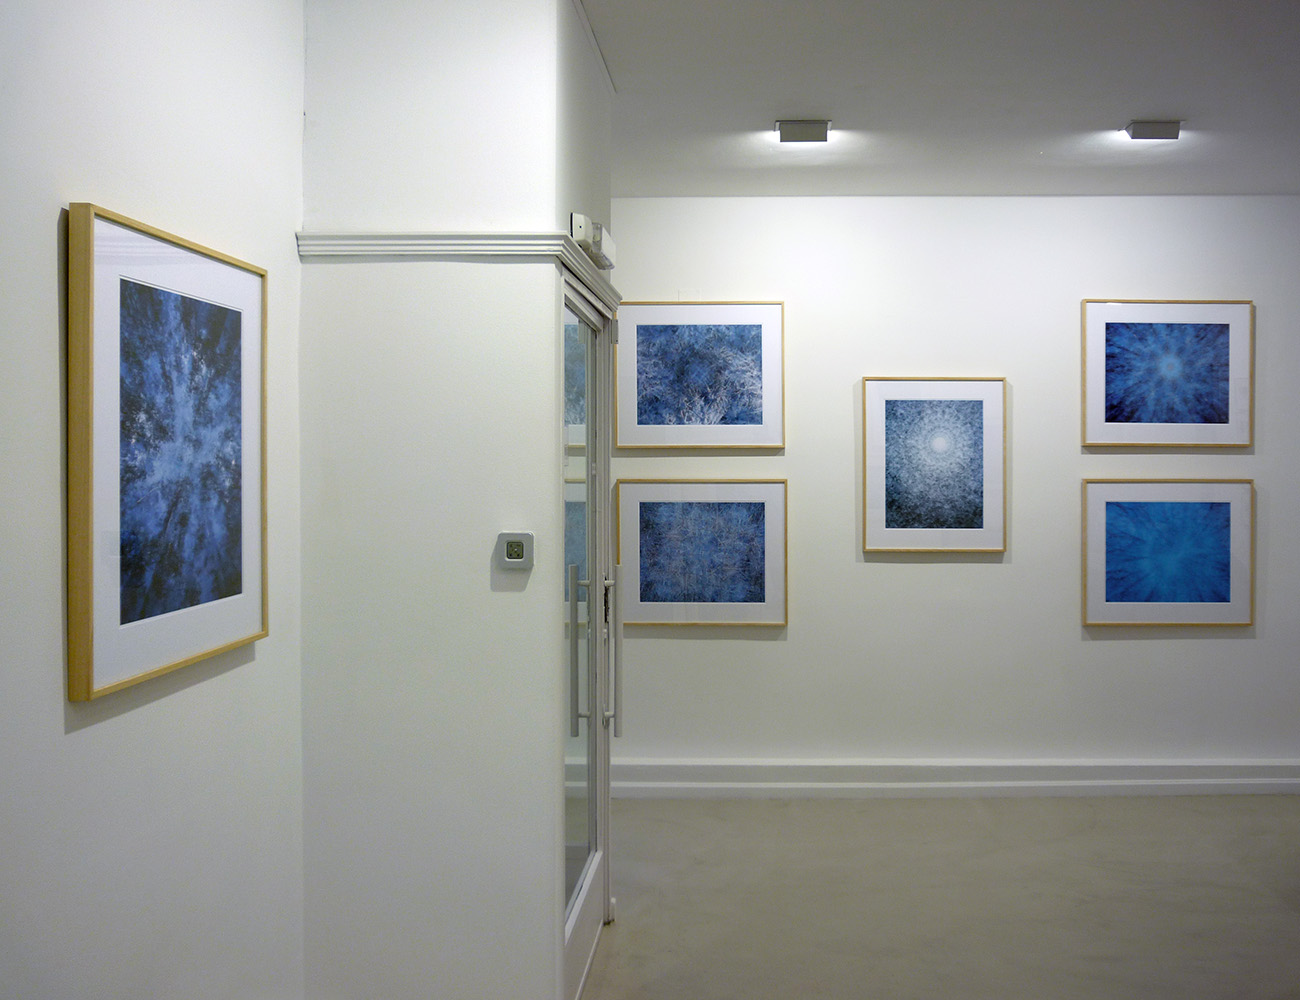 EXPOSICIONES - FERNANDO PUCHE,  NATURE  PHOTOGRAPHY  BEYOND  OBVIOUS